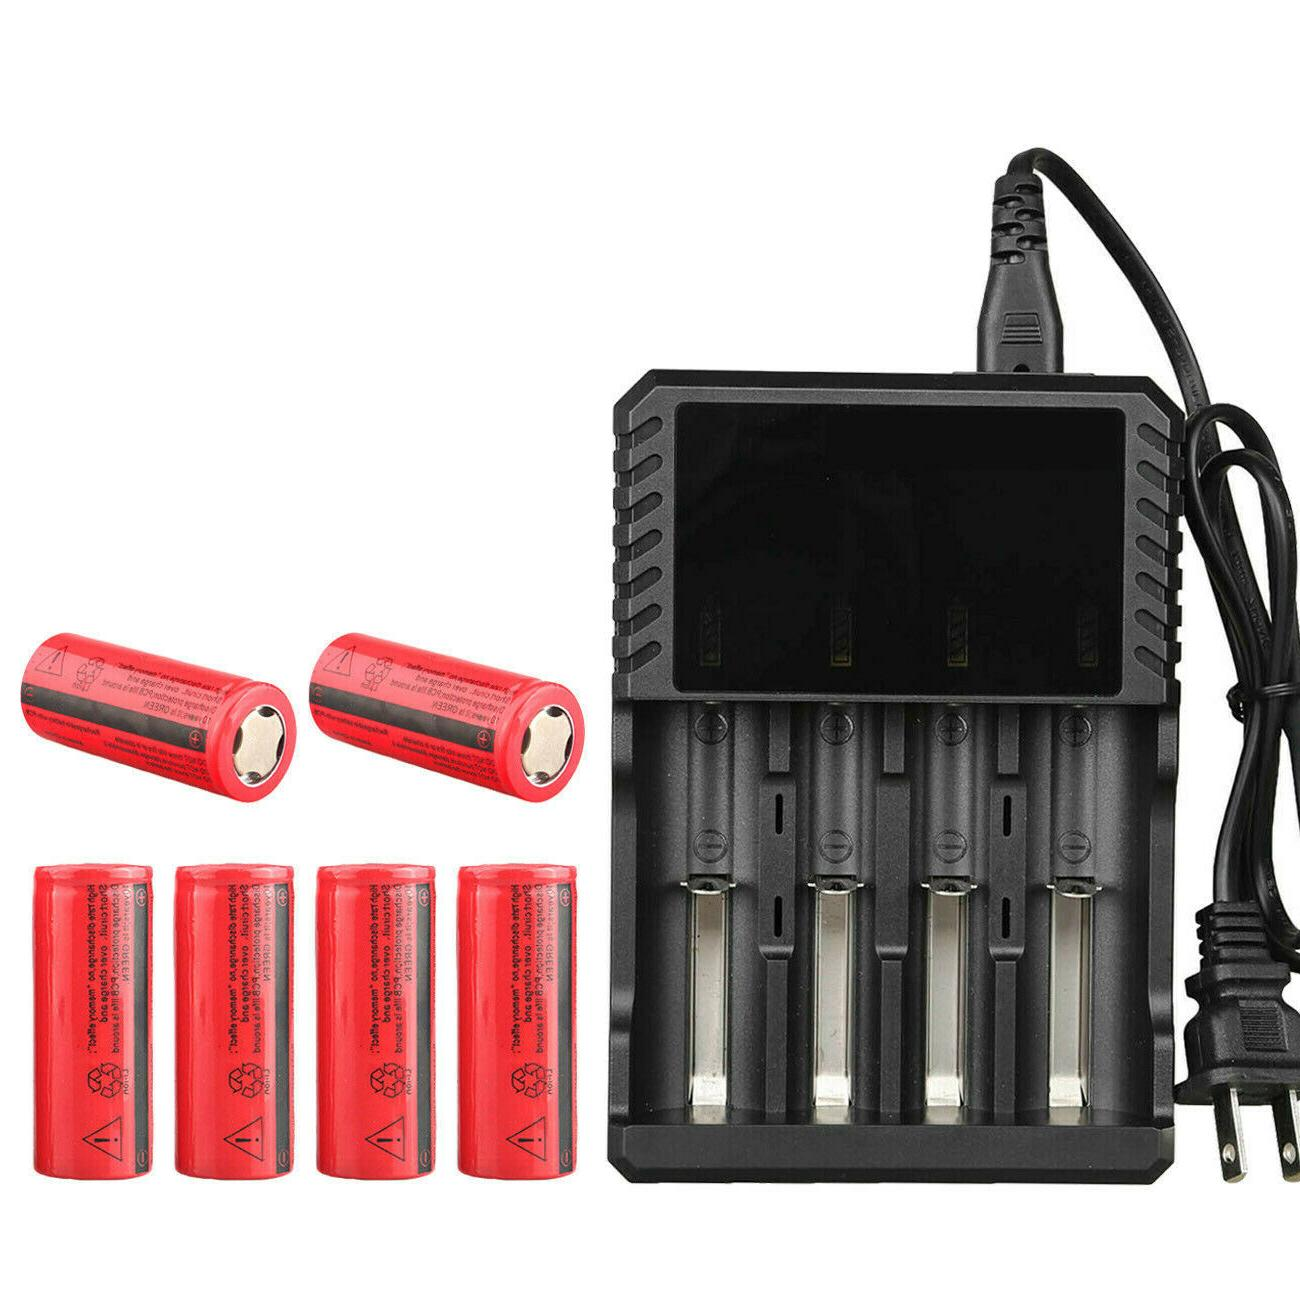 Flat Top Batteries For Torch Lot